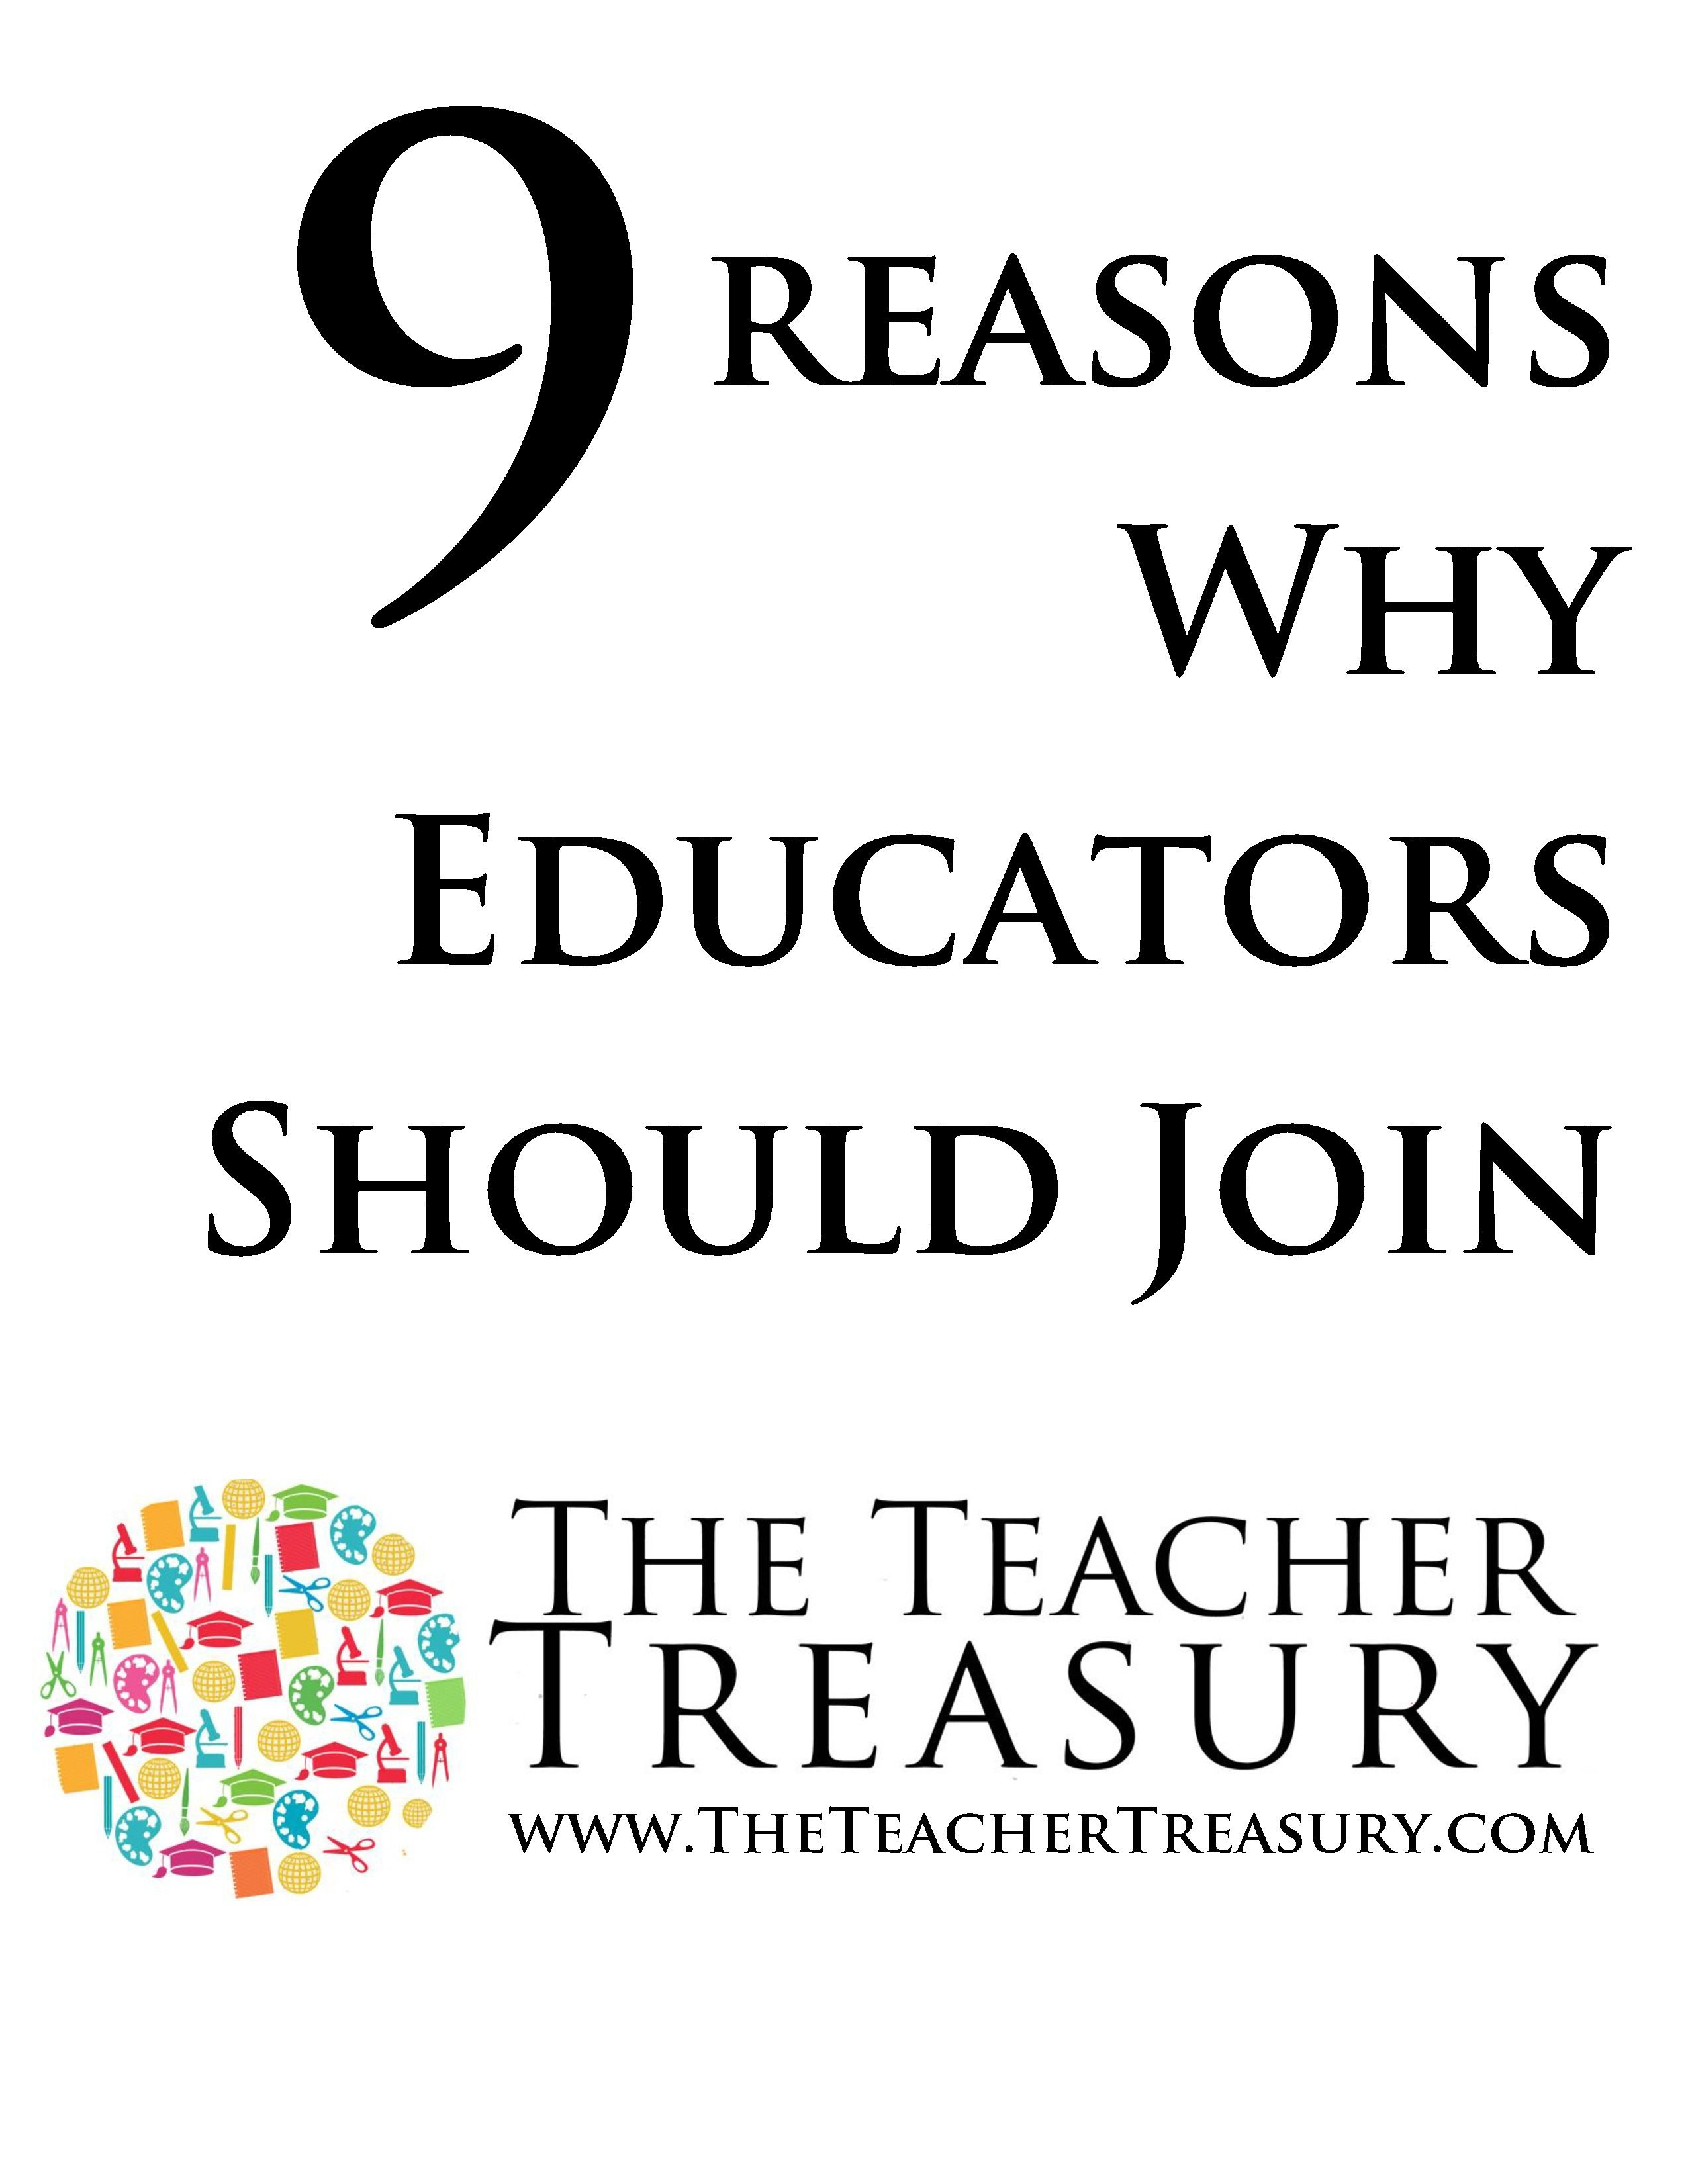 The Teacher Treasury is a free online educational